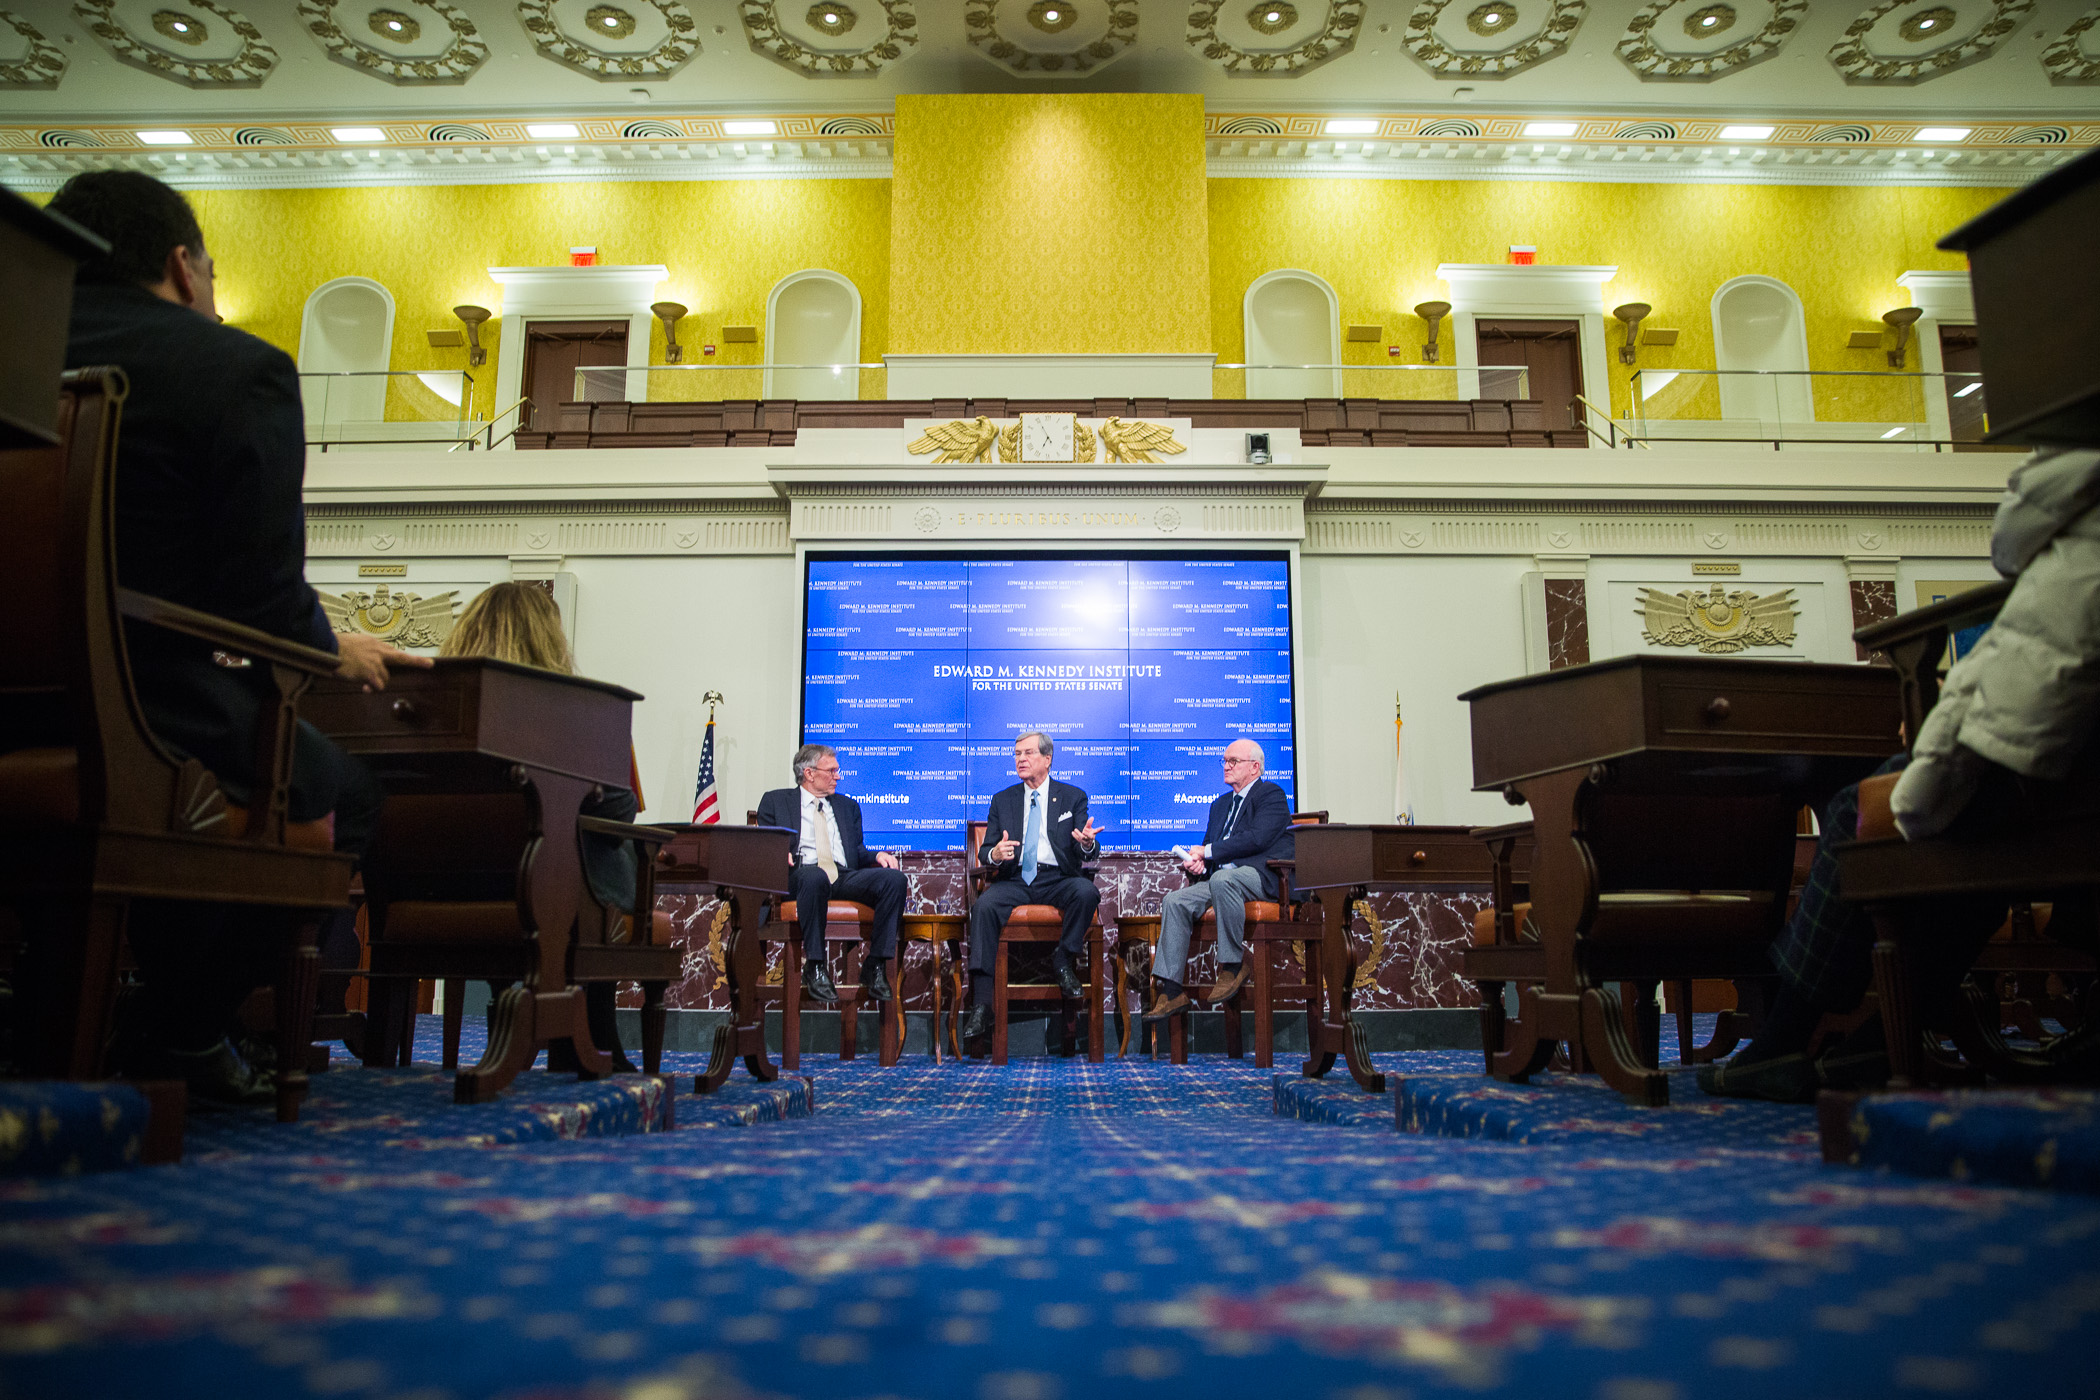 Across the Aisle public program in the full scale reproduction Senate chamber with former Senators and Majority Leaders Trent Lott and Tom Daschle